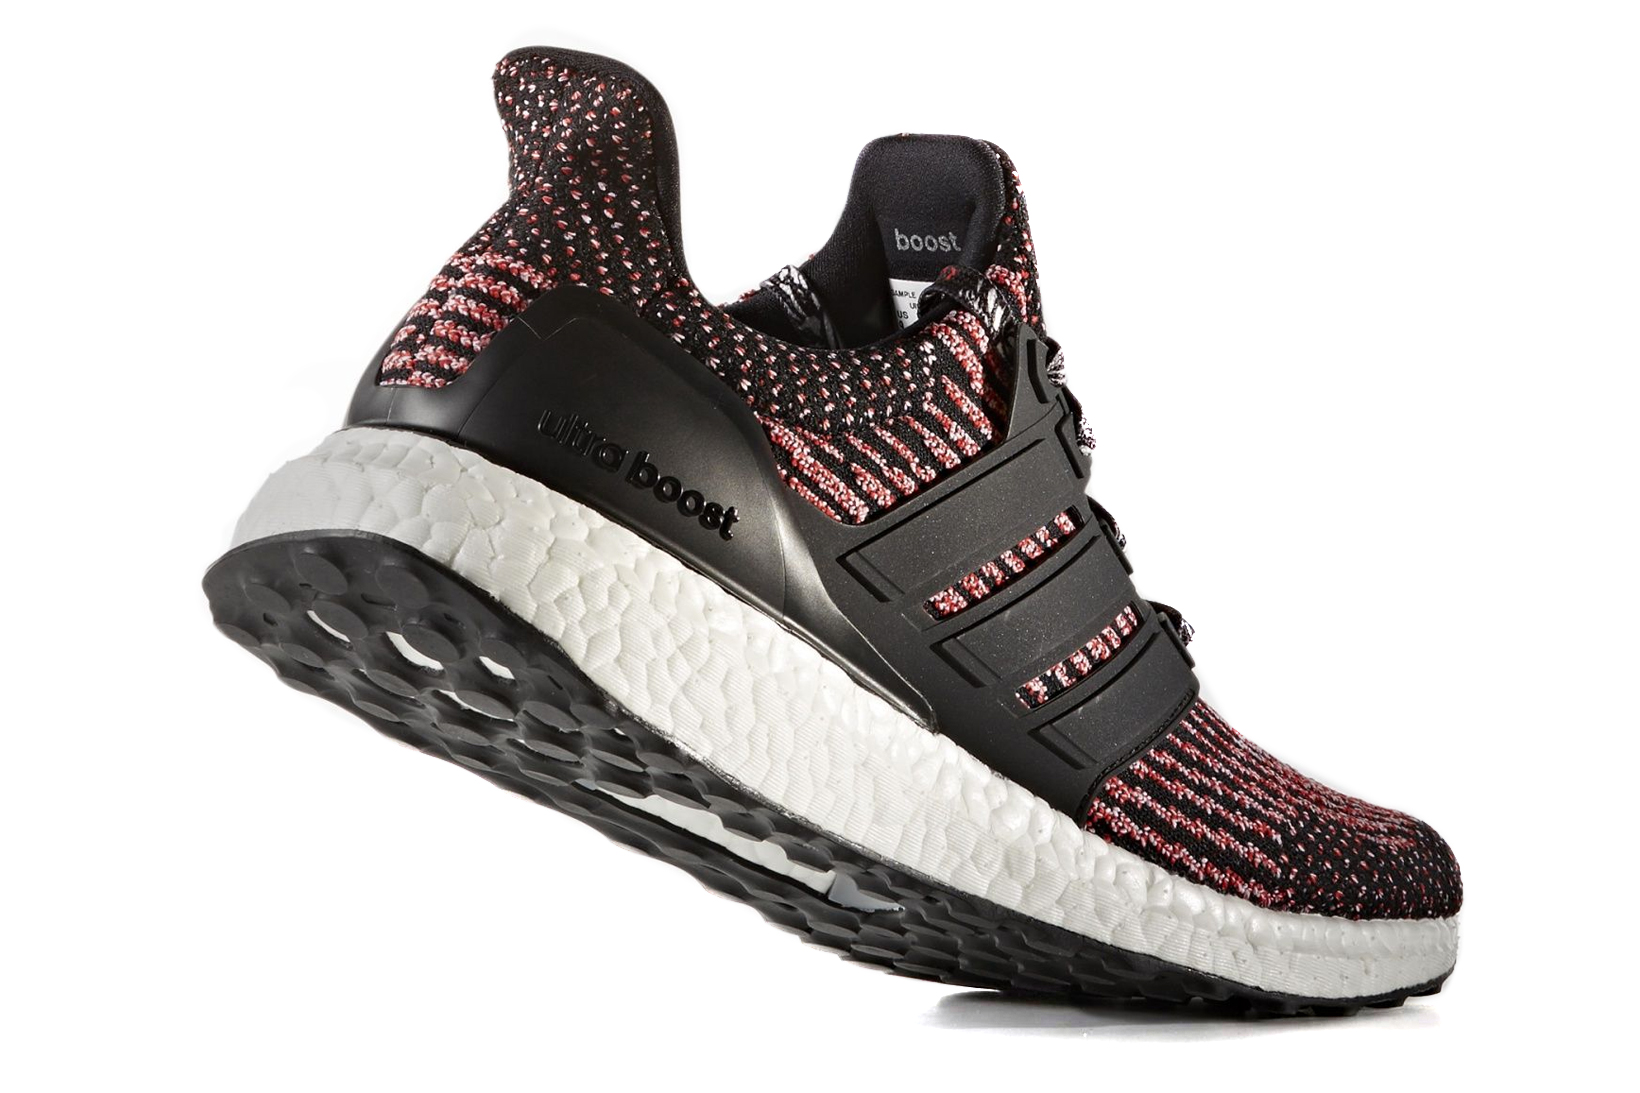 adidas UltraBOOST 3.0 Chinese New Year - 1833524